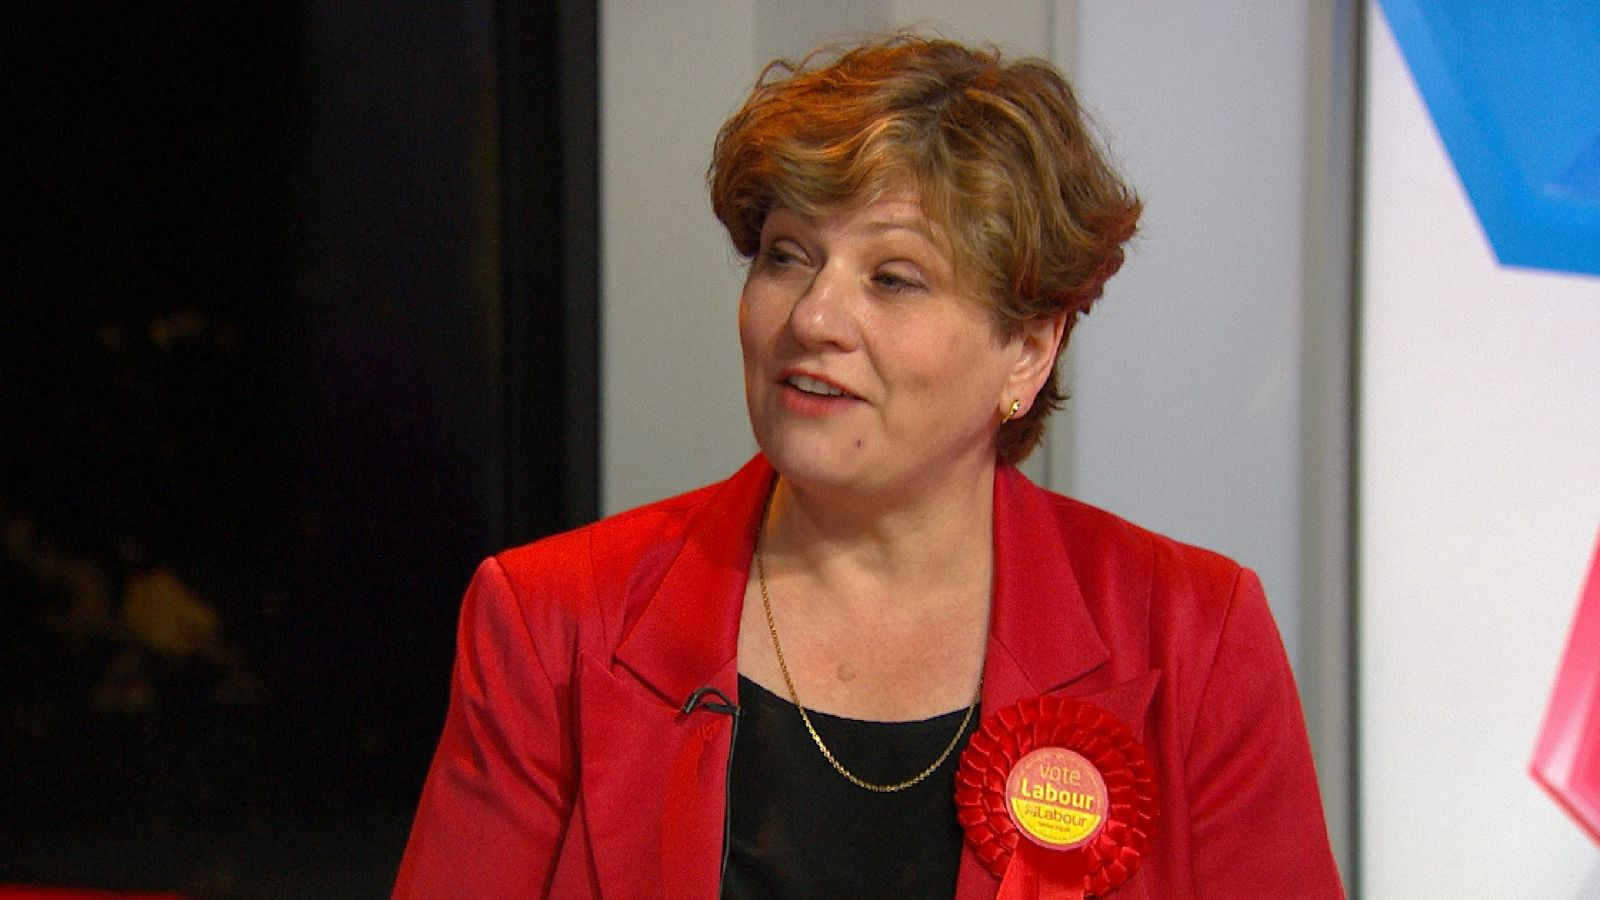 Labour's Emily Thornberry calls for Theresa May's resignation if the exit poll is correct